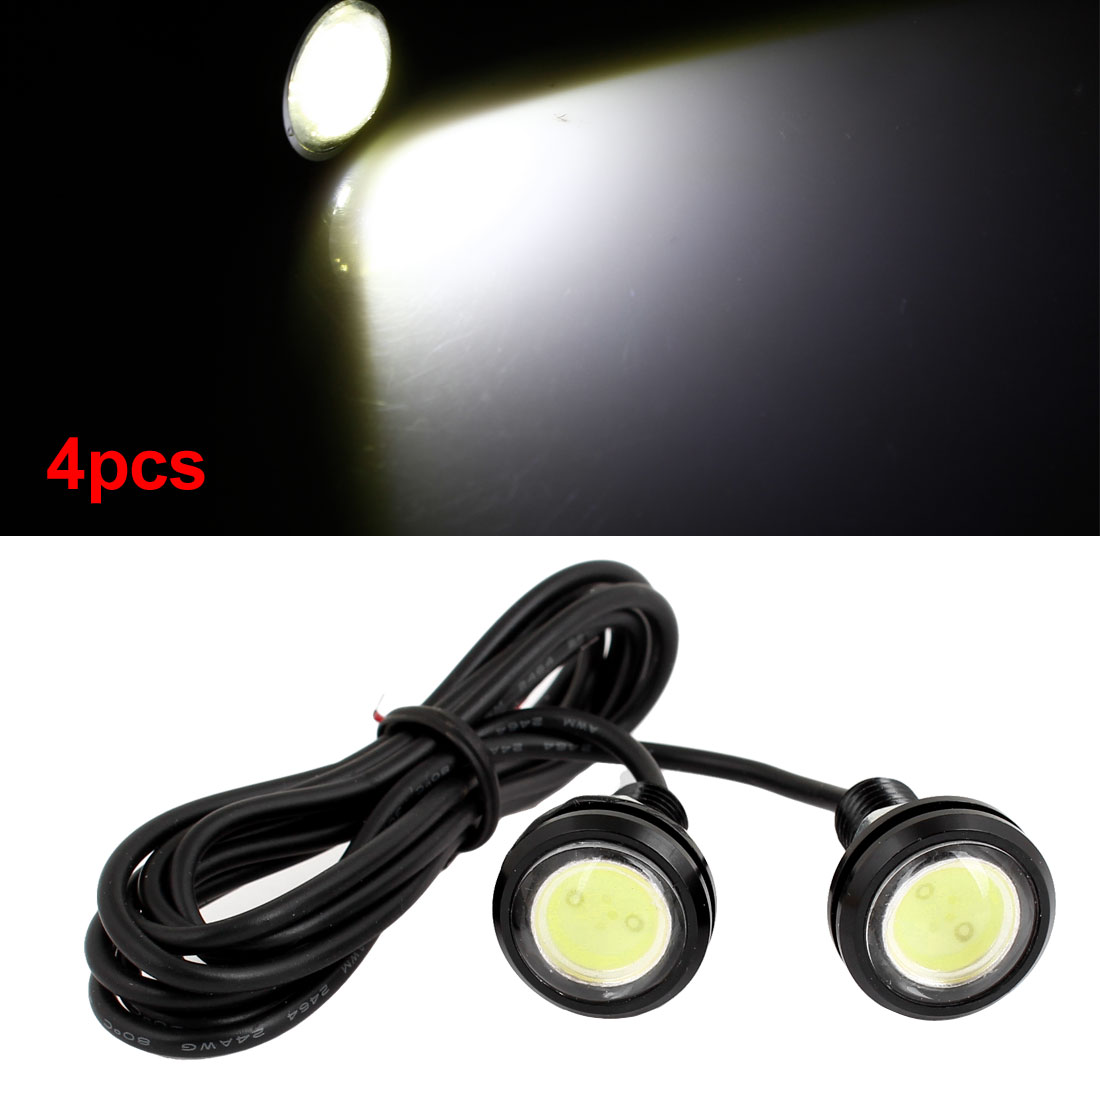 4pcs Auto 23mm Dia White Eagle Eye LED Bulb Reverse Lamp Daytime Running Light